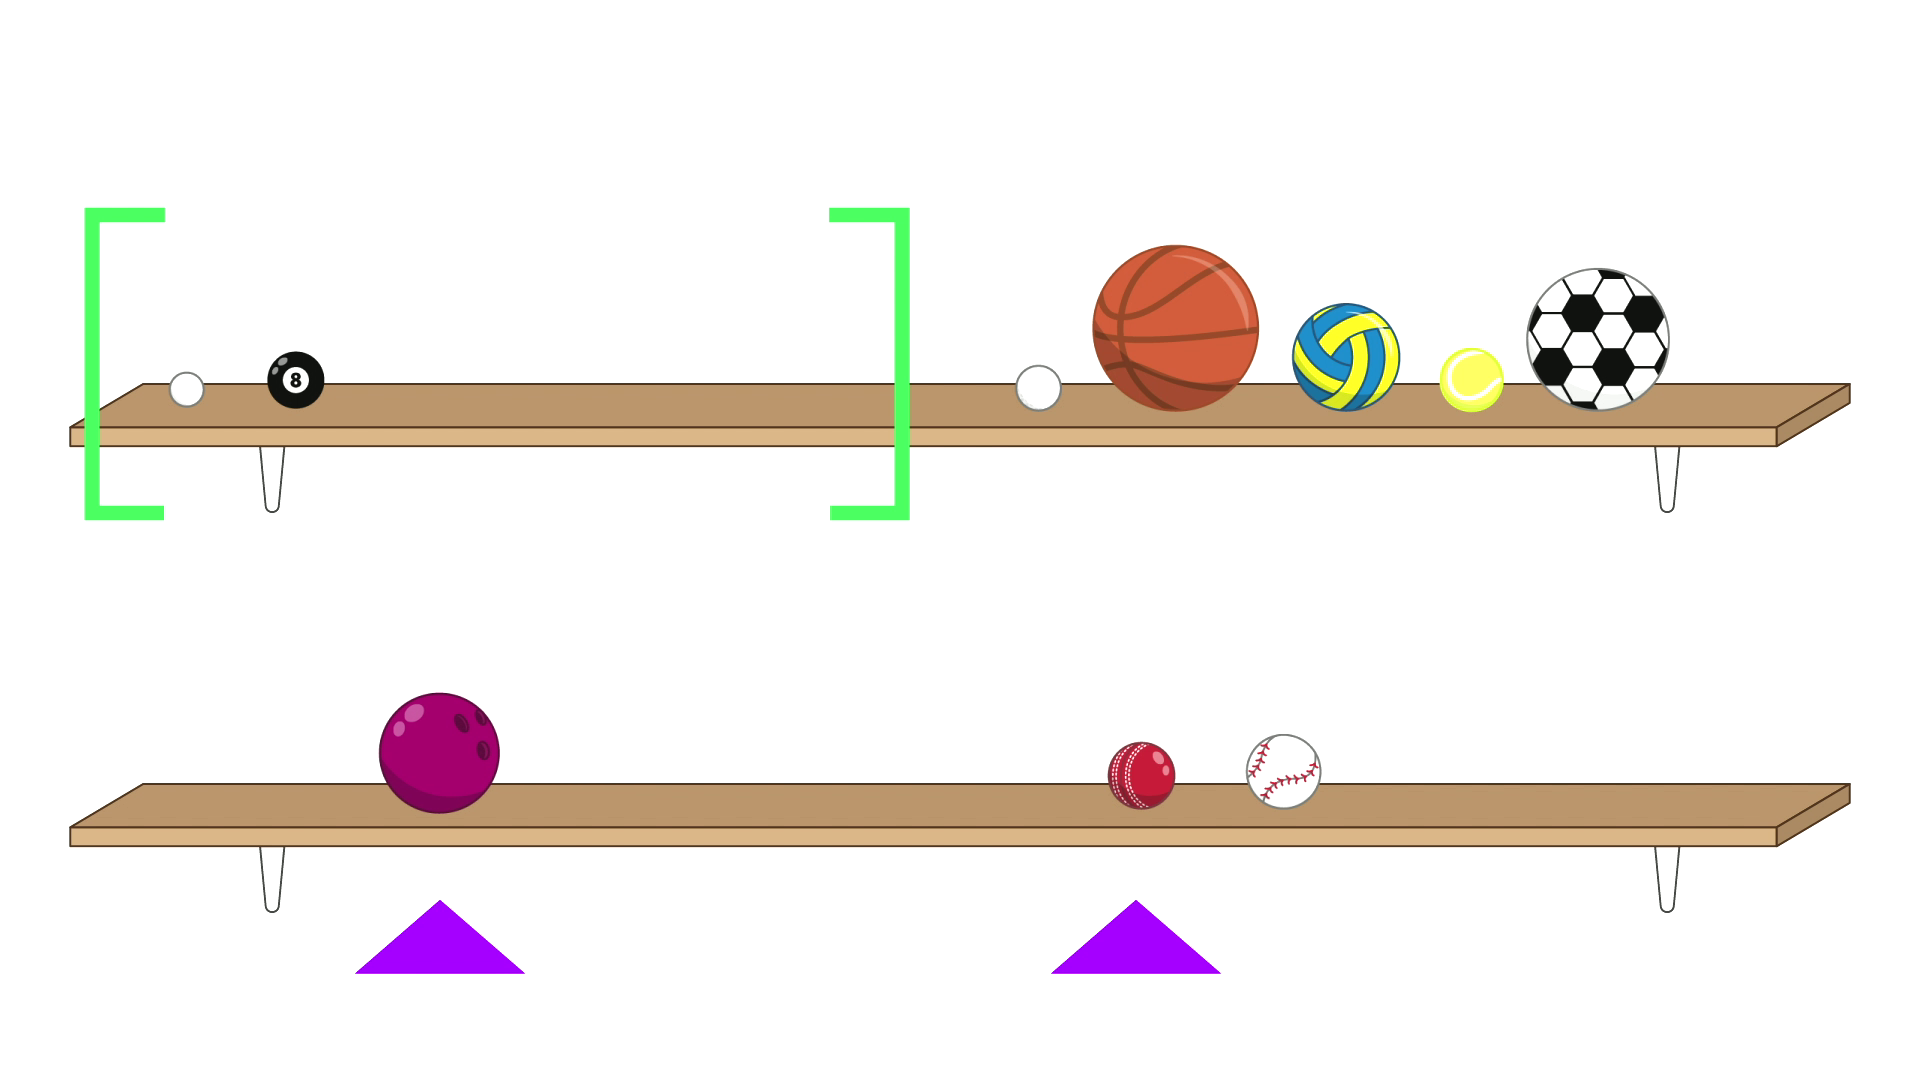 There are 7 balls on the top shelf. A pair of green brackets contain the left half of the shelf, and contains a ping-pong ball, a pool ball, and a gap.  After the brackets are five balls: a golf ball, a basketball, a netball, a tennis ball and a soccer ball. On the bottom shelf are 3 balls in two groups. The left-hand group consists of just a bowling ball, while the right-hand group consists of a cricket ball and a baseball. A purple arrow points at the first ball in each group on the bottom shelf: the bowling ball and the cricket ball.